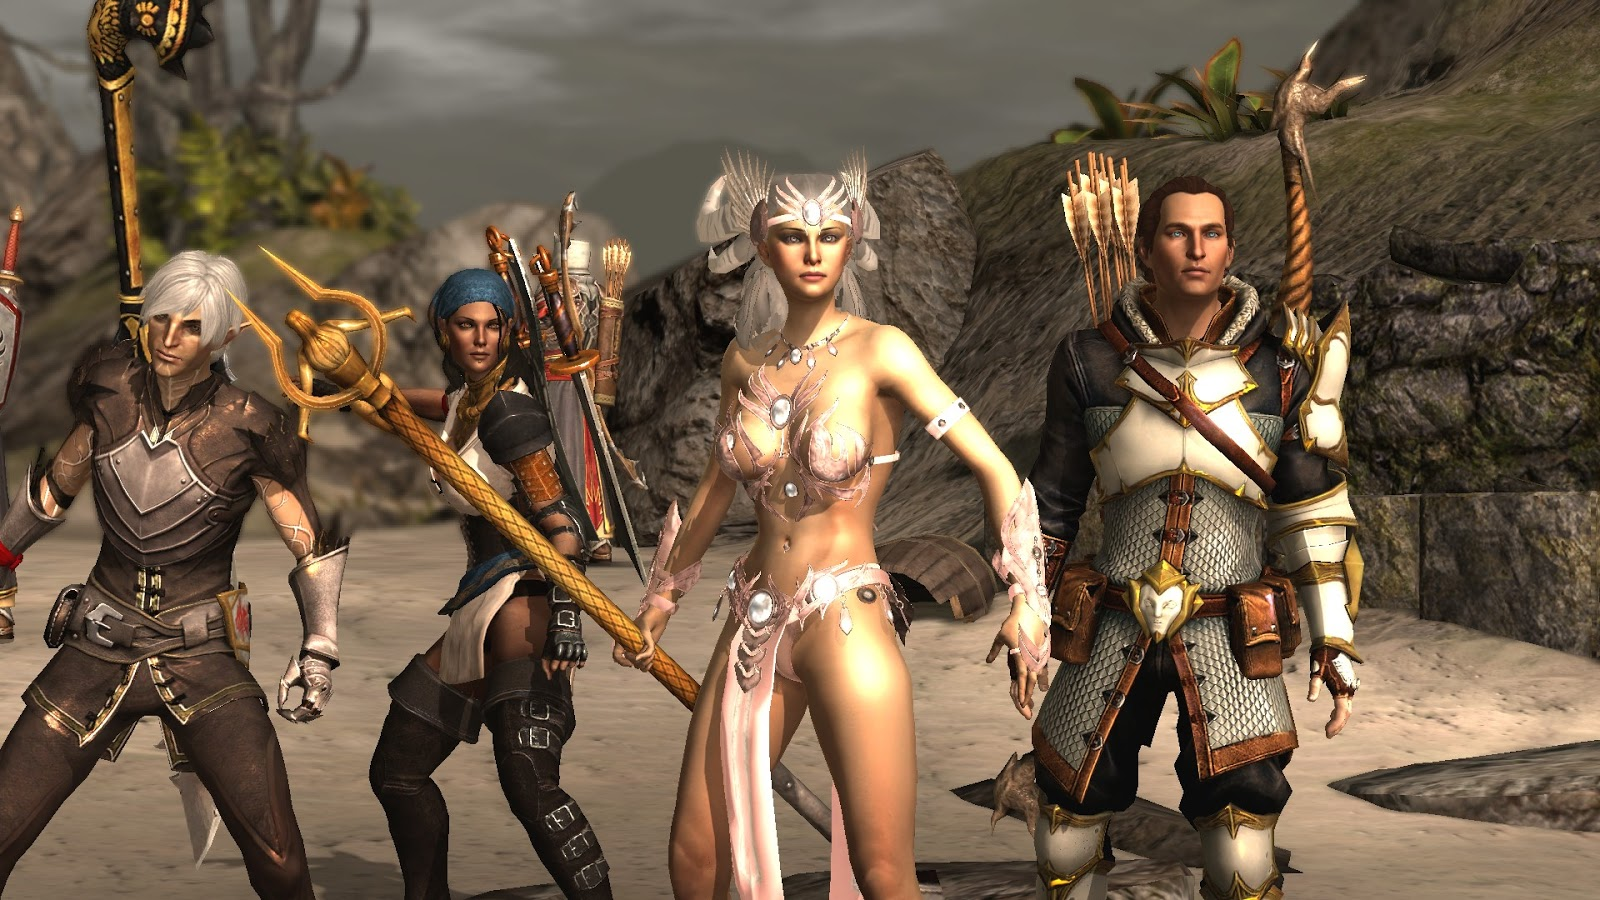 Pictures of nudity in dragon age exploited tube